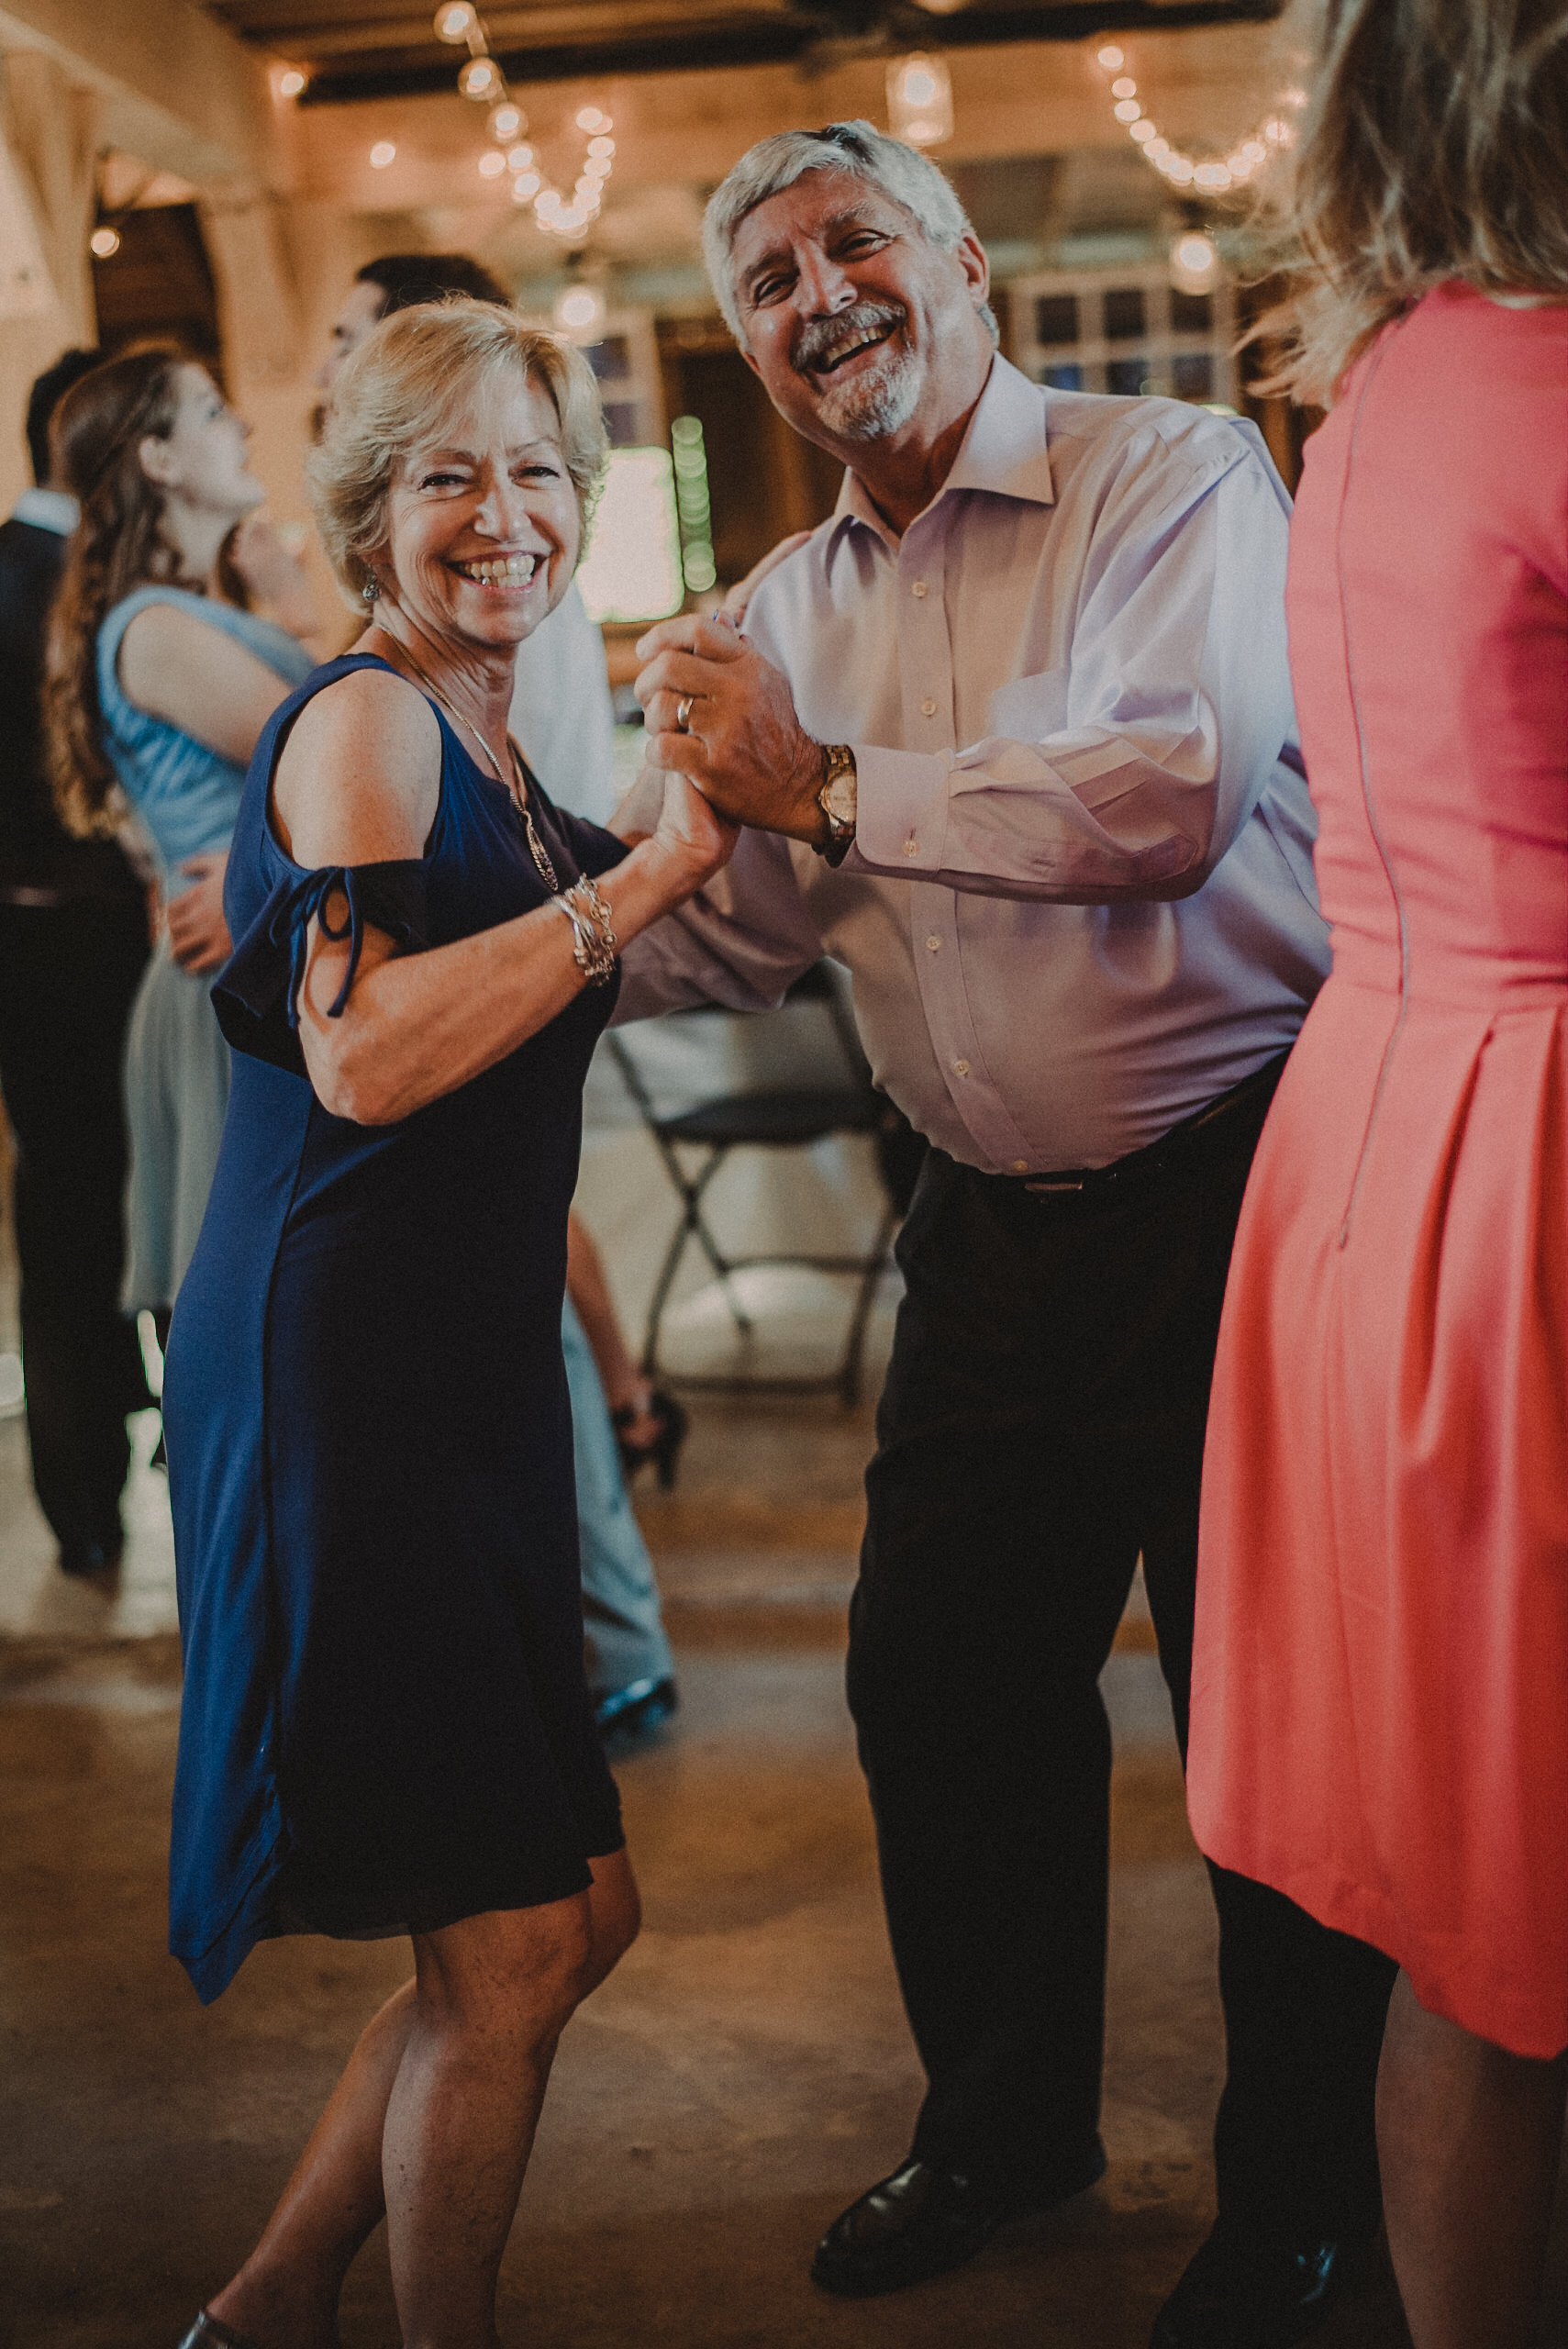 Guests dancing at wedding